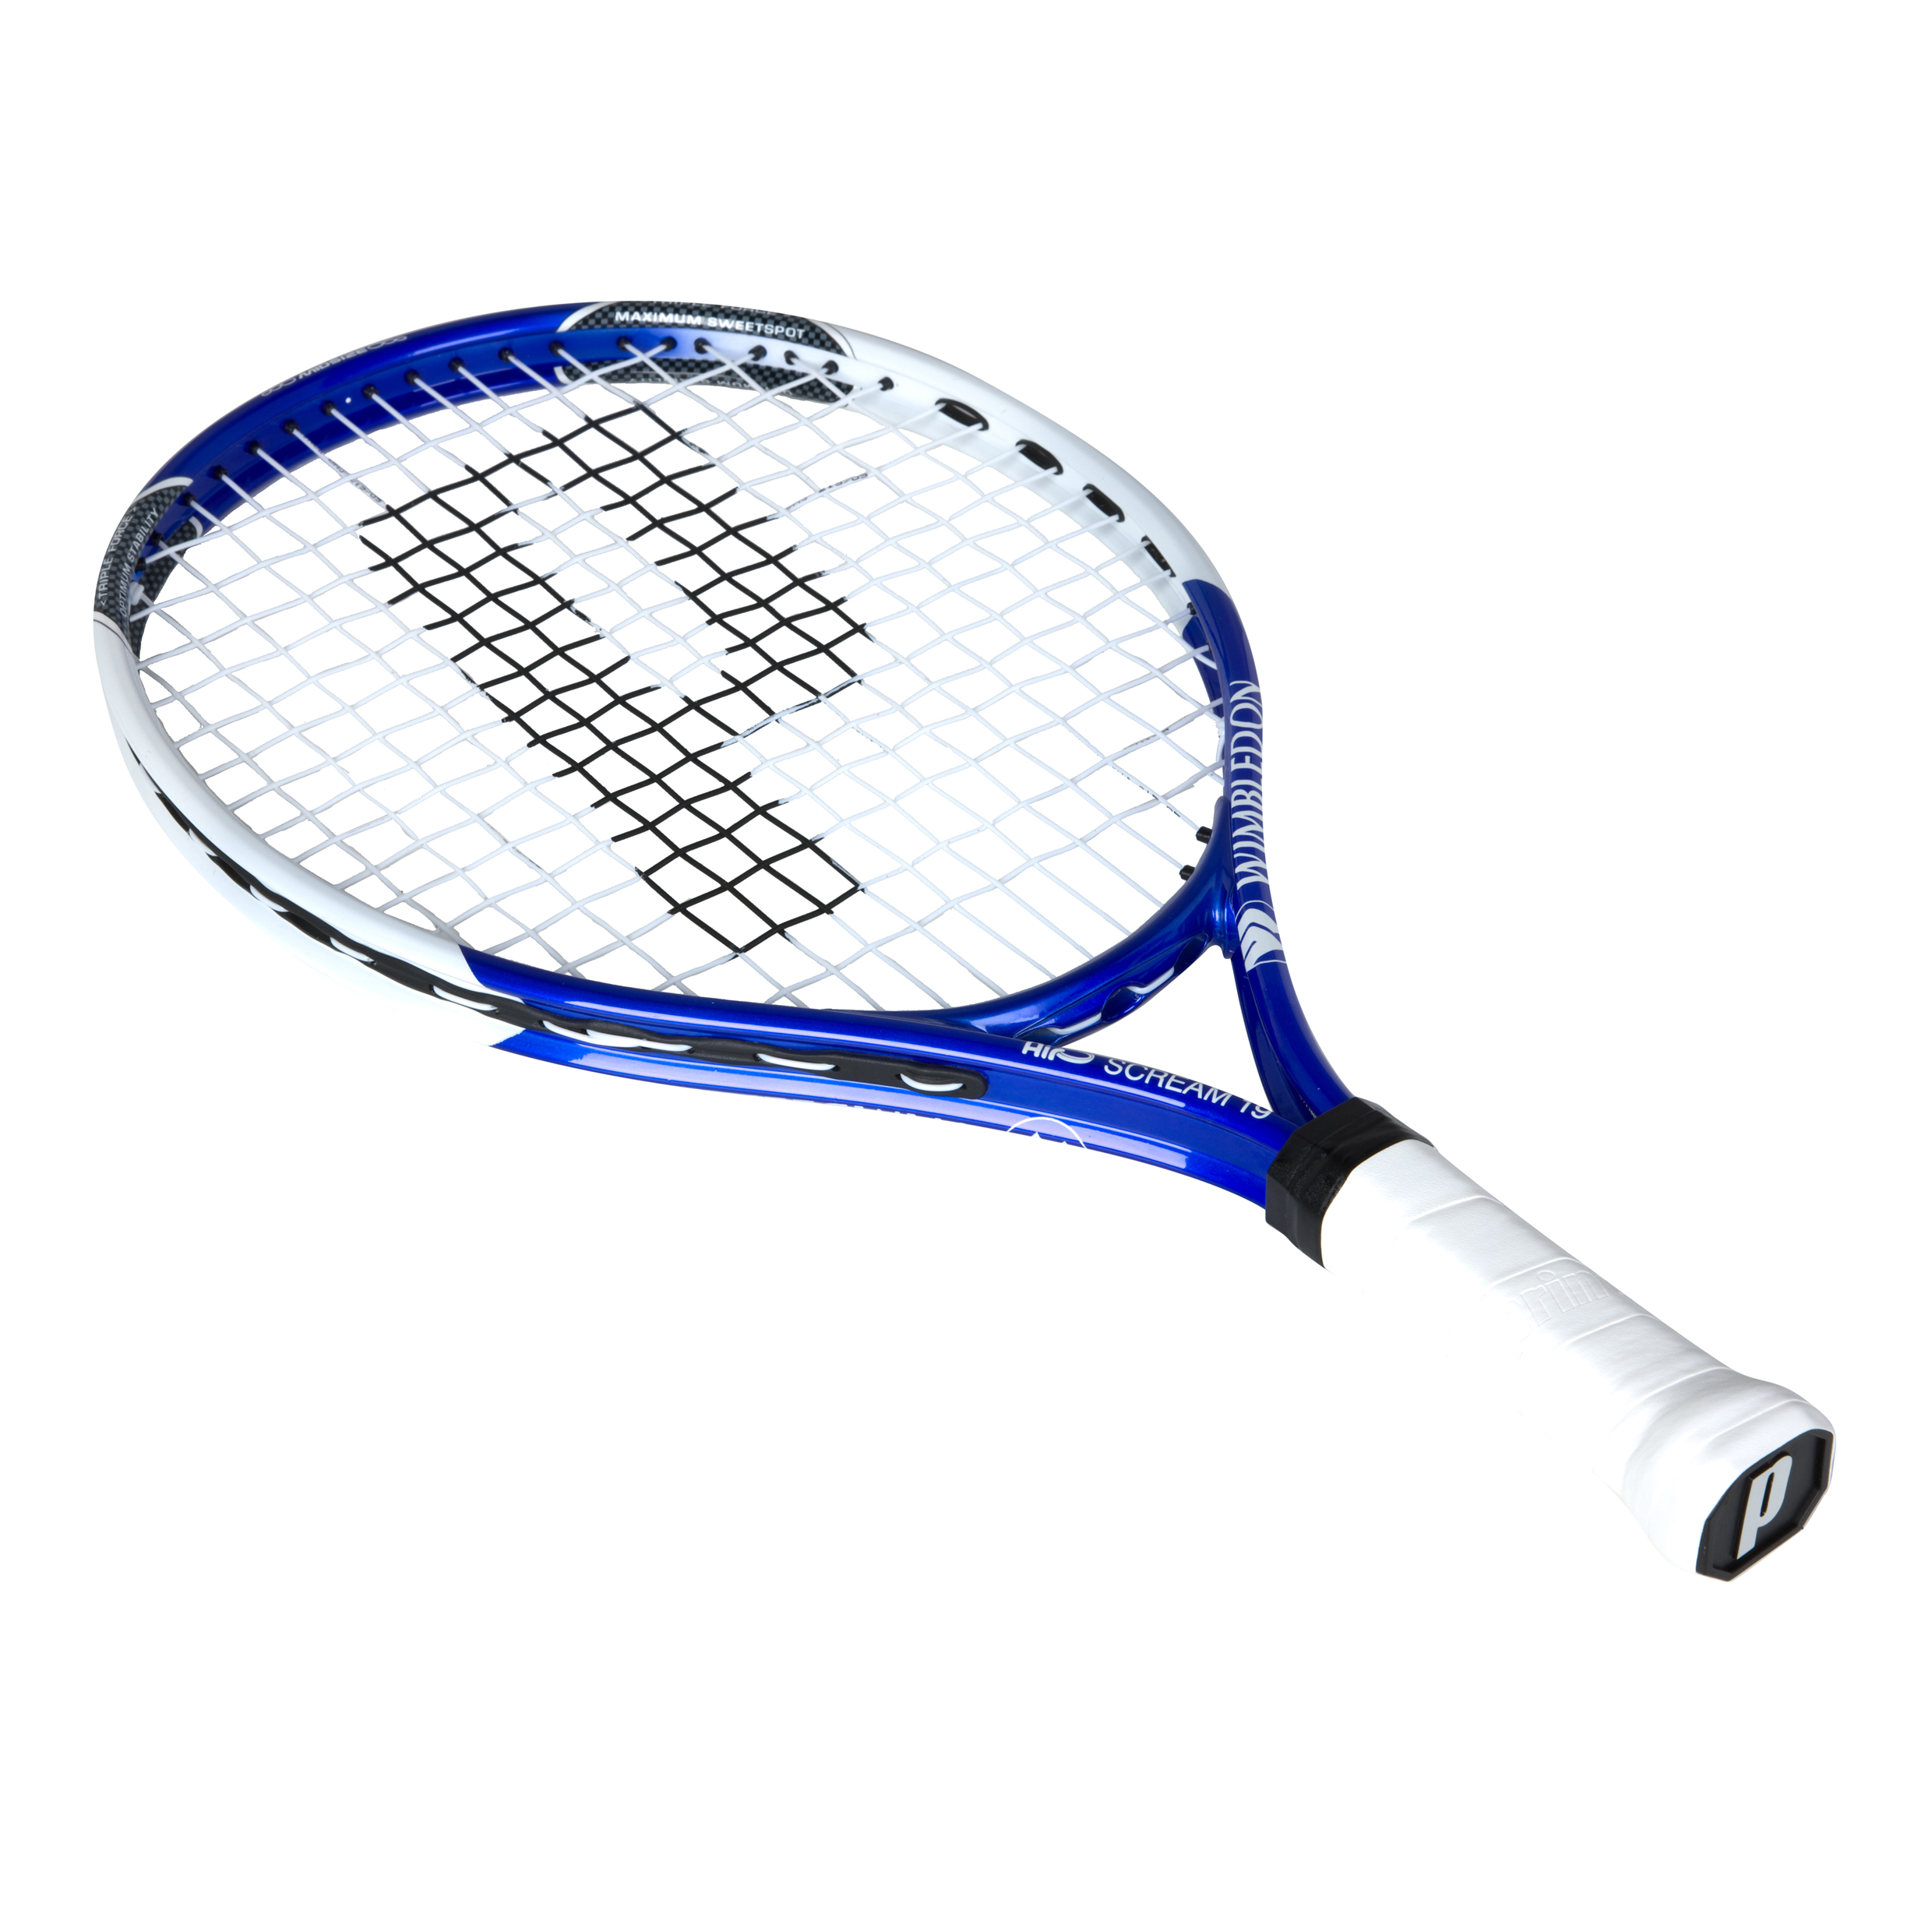 Wimbledon By Prince Airo Scream 19 Tennis Racket - Blue/White